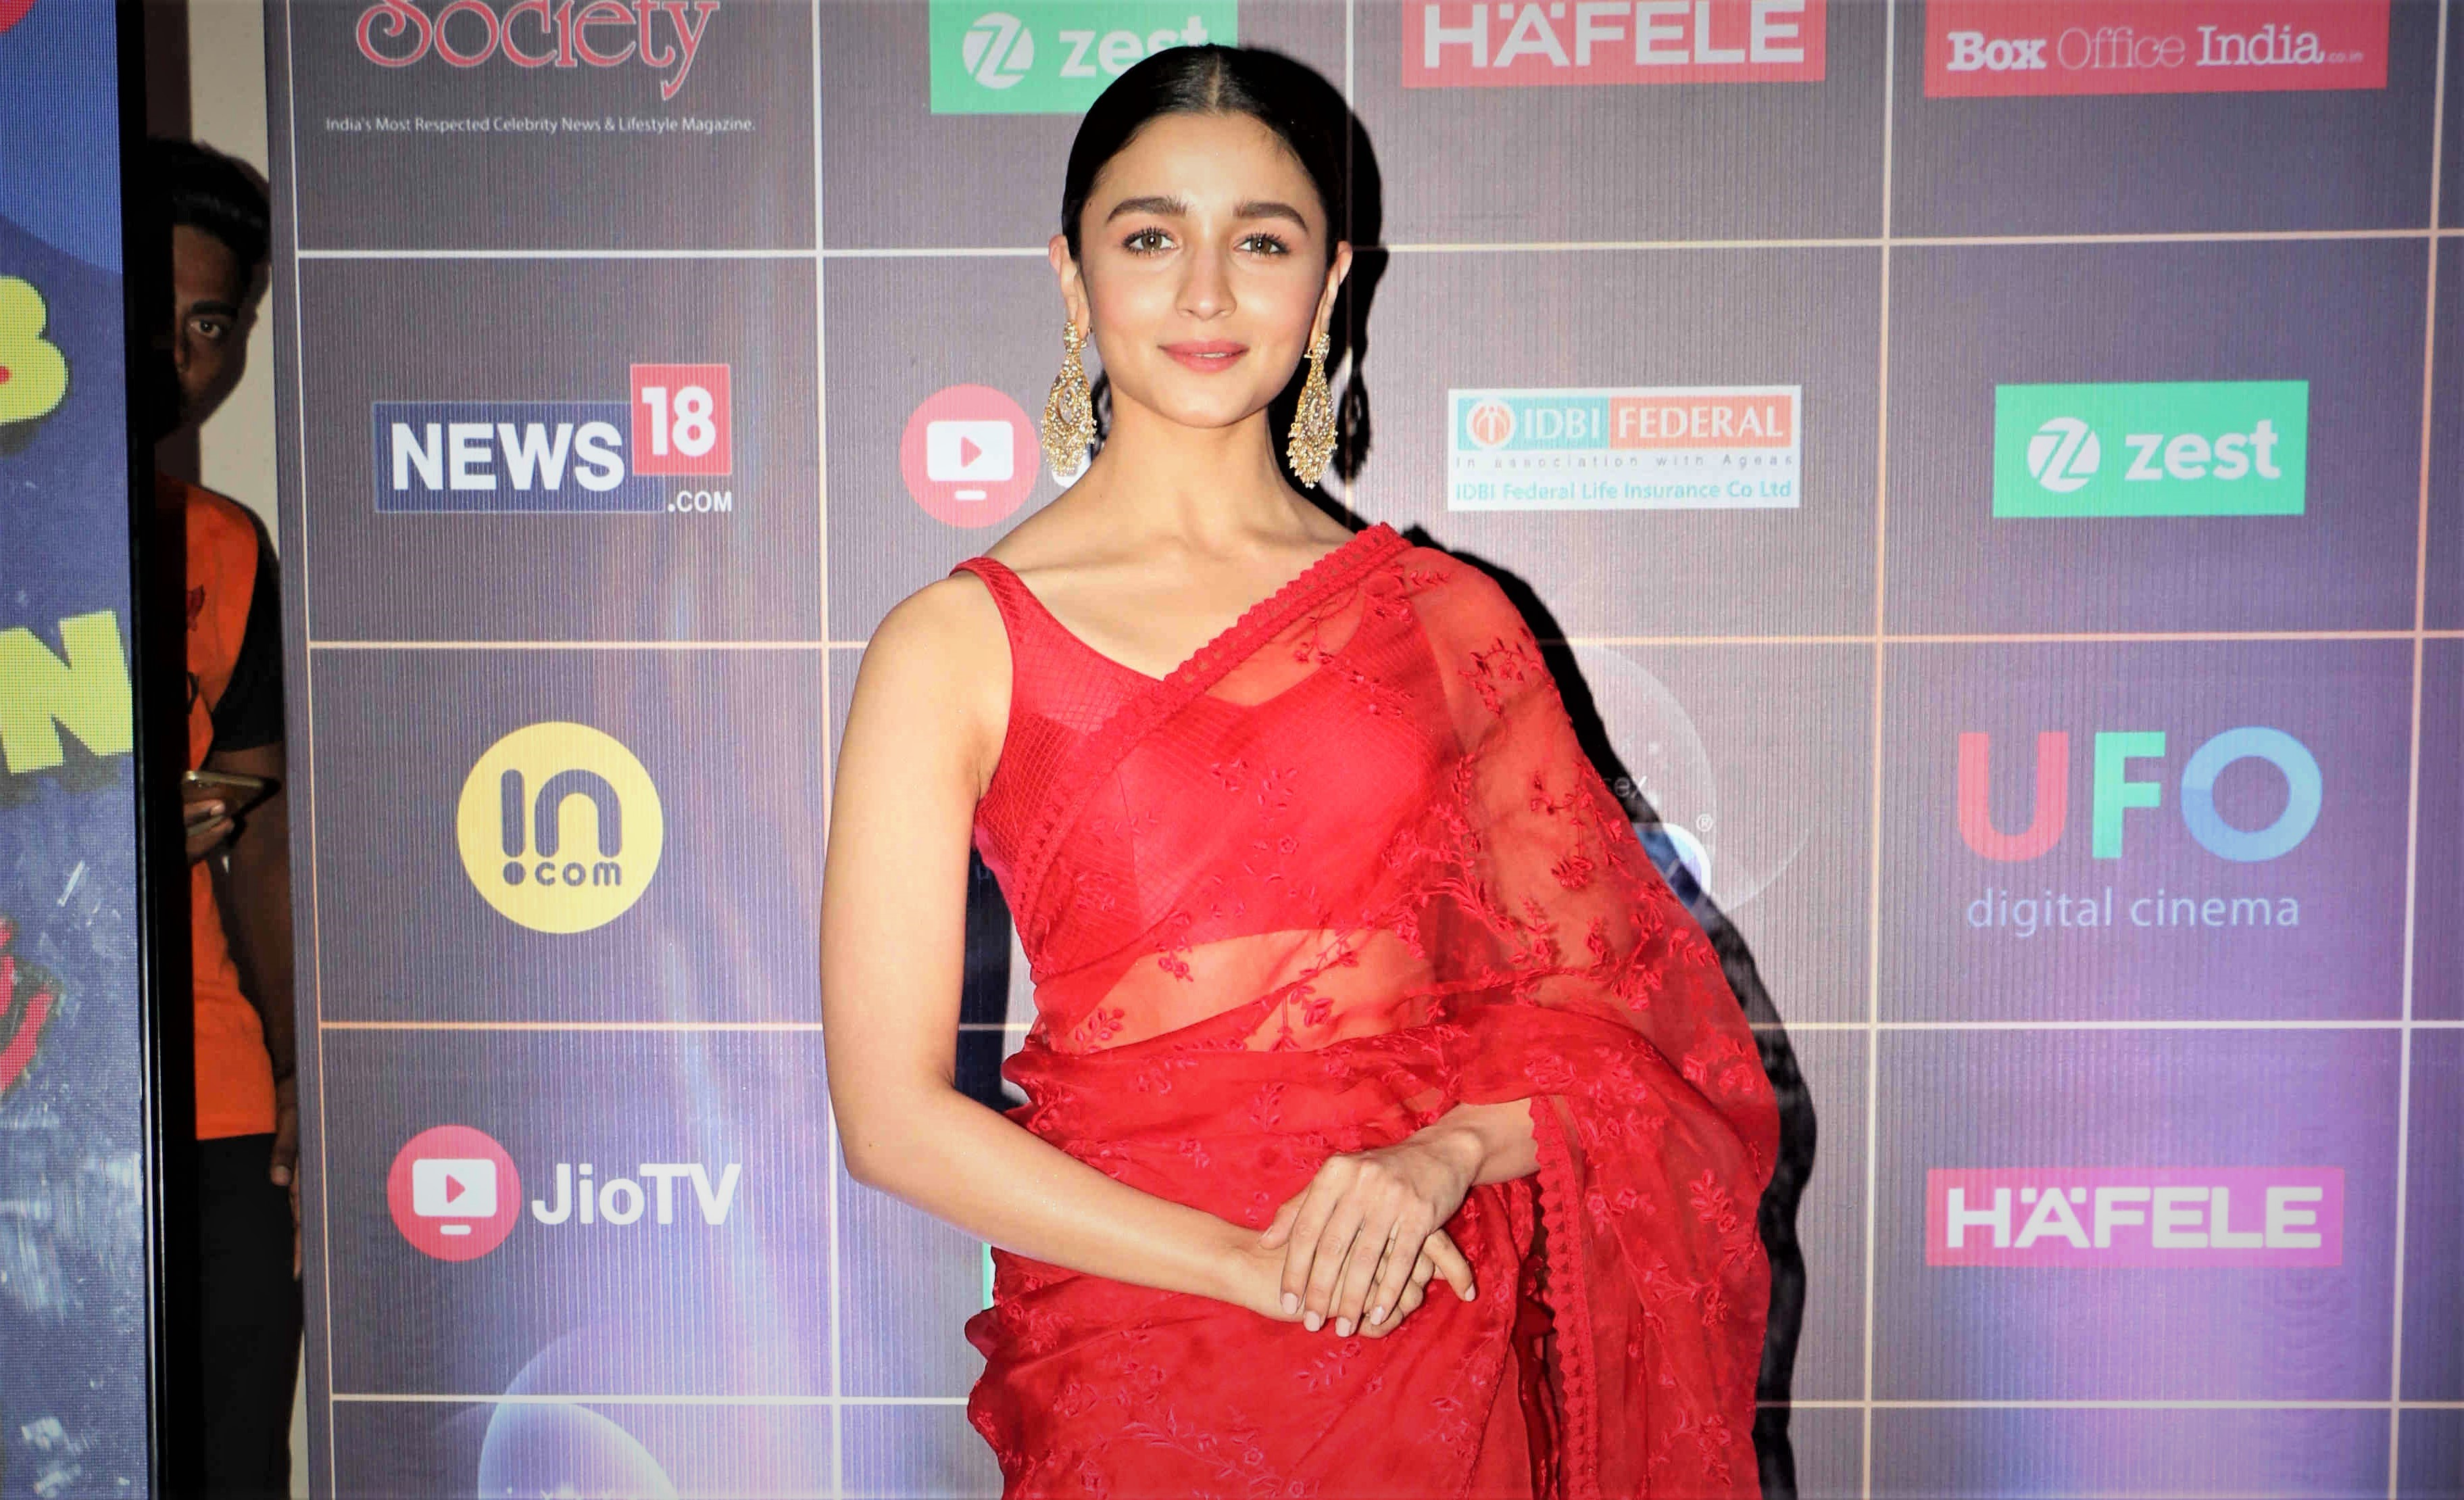 This is just the beginning there is a lot more that will happen, says Alia Bhatt on Kalank